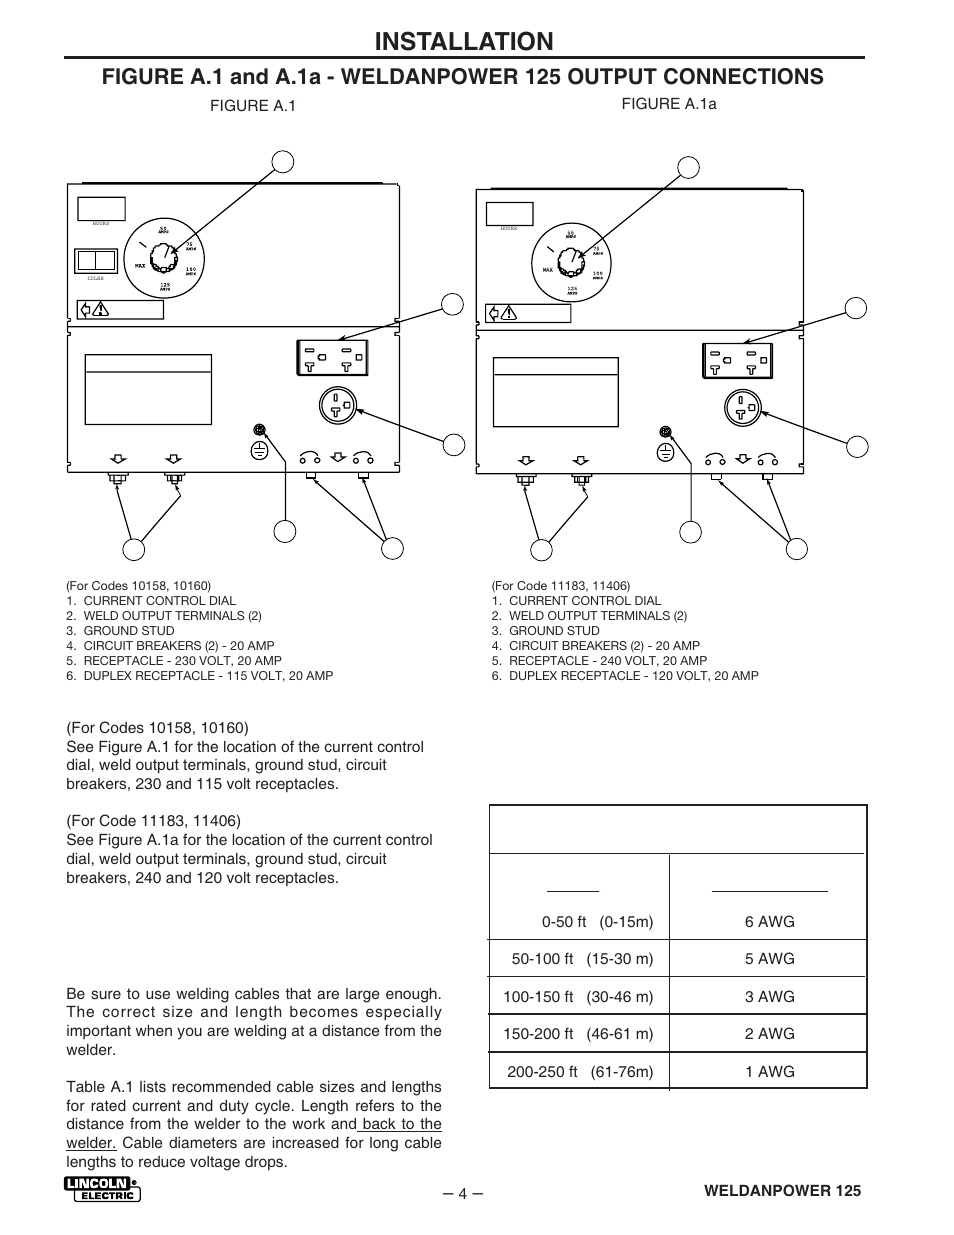 Installation Electrical Output Connections Welding Cable 240 Volt 20 Amp Wiring Diagram Lincoln Electric Weldanpower 125 Im530 C User Manual Page 11 40